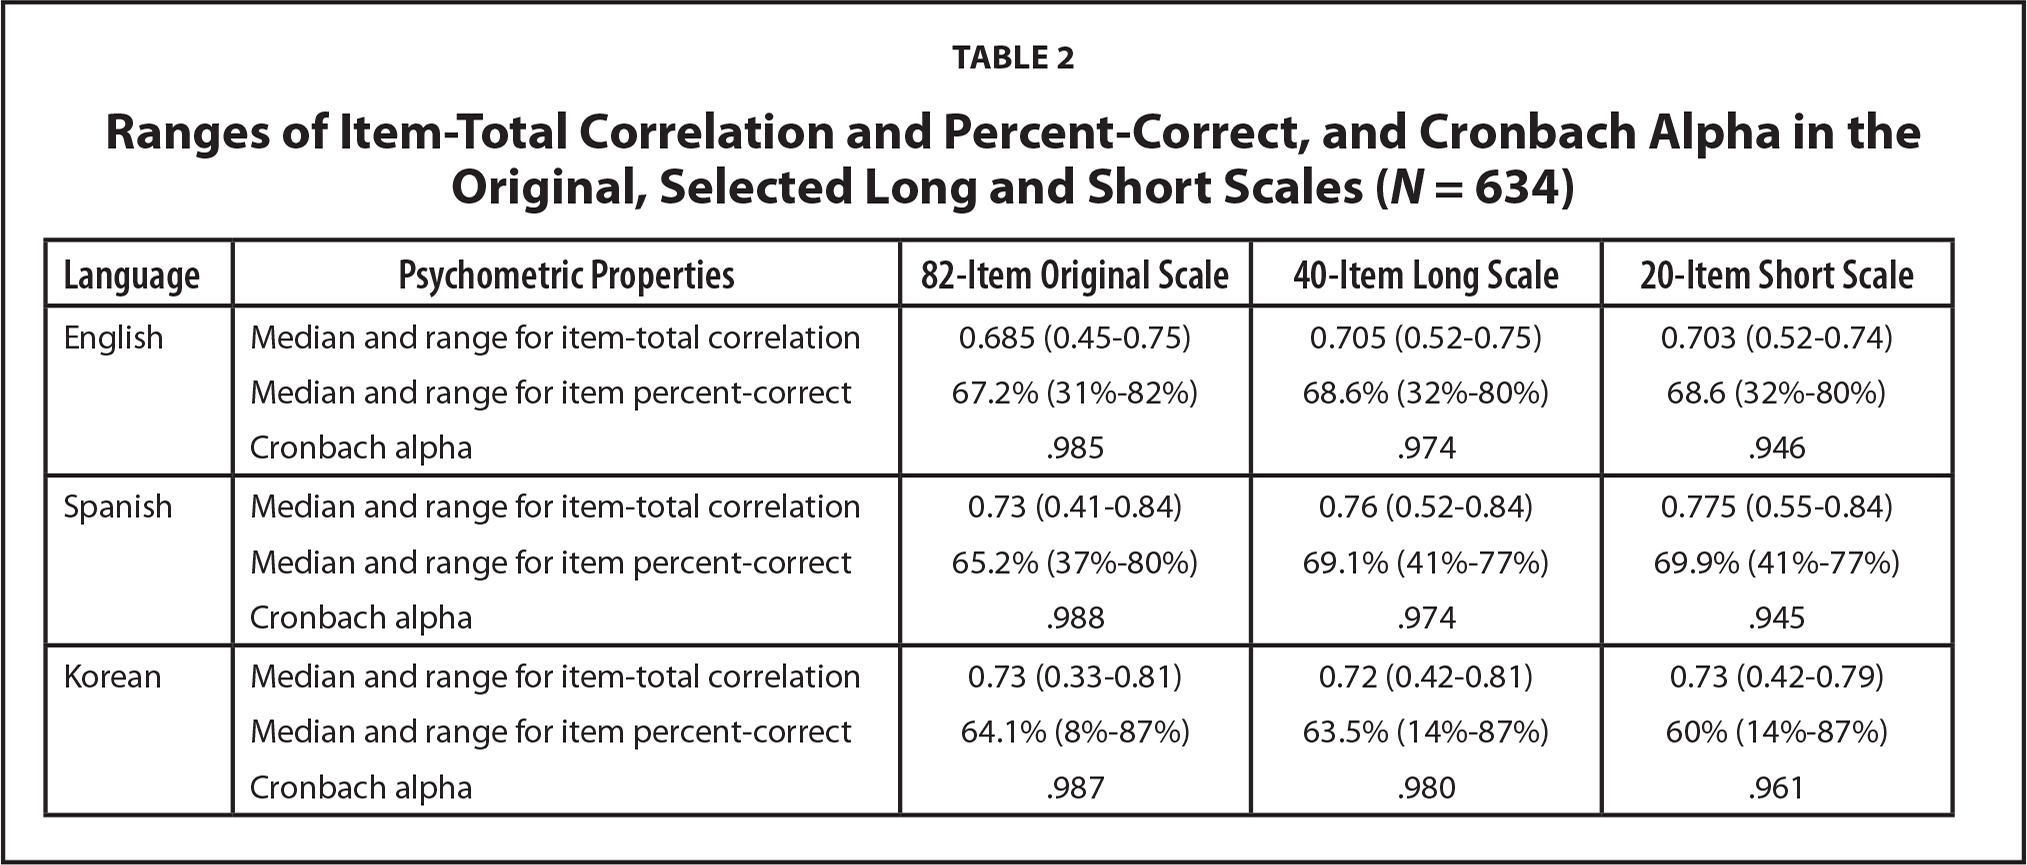 Ranges of Item-Total Correlation and Percent-Correct, and Cronbach Alpha in the Original, Selected Long and Short Scales (N = 634)